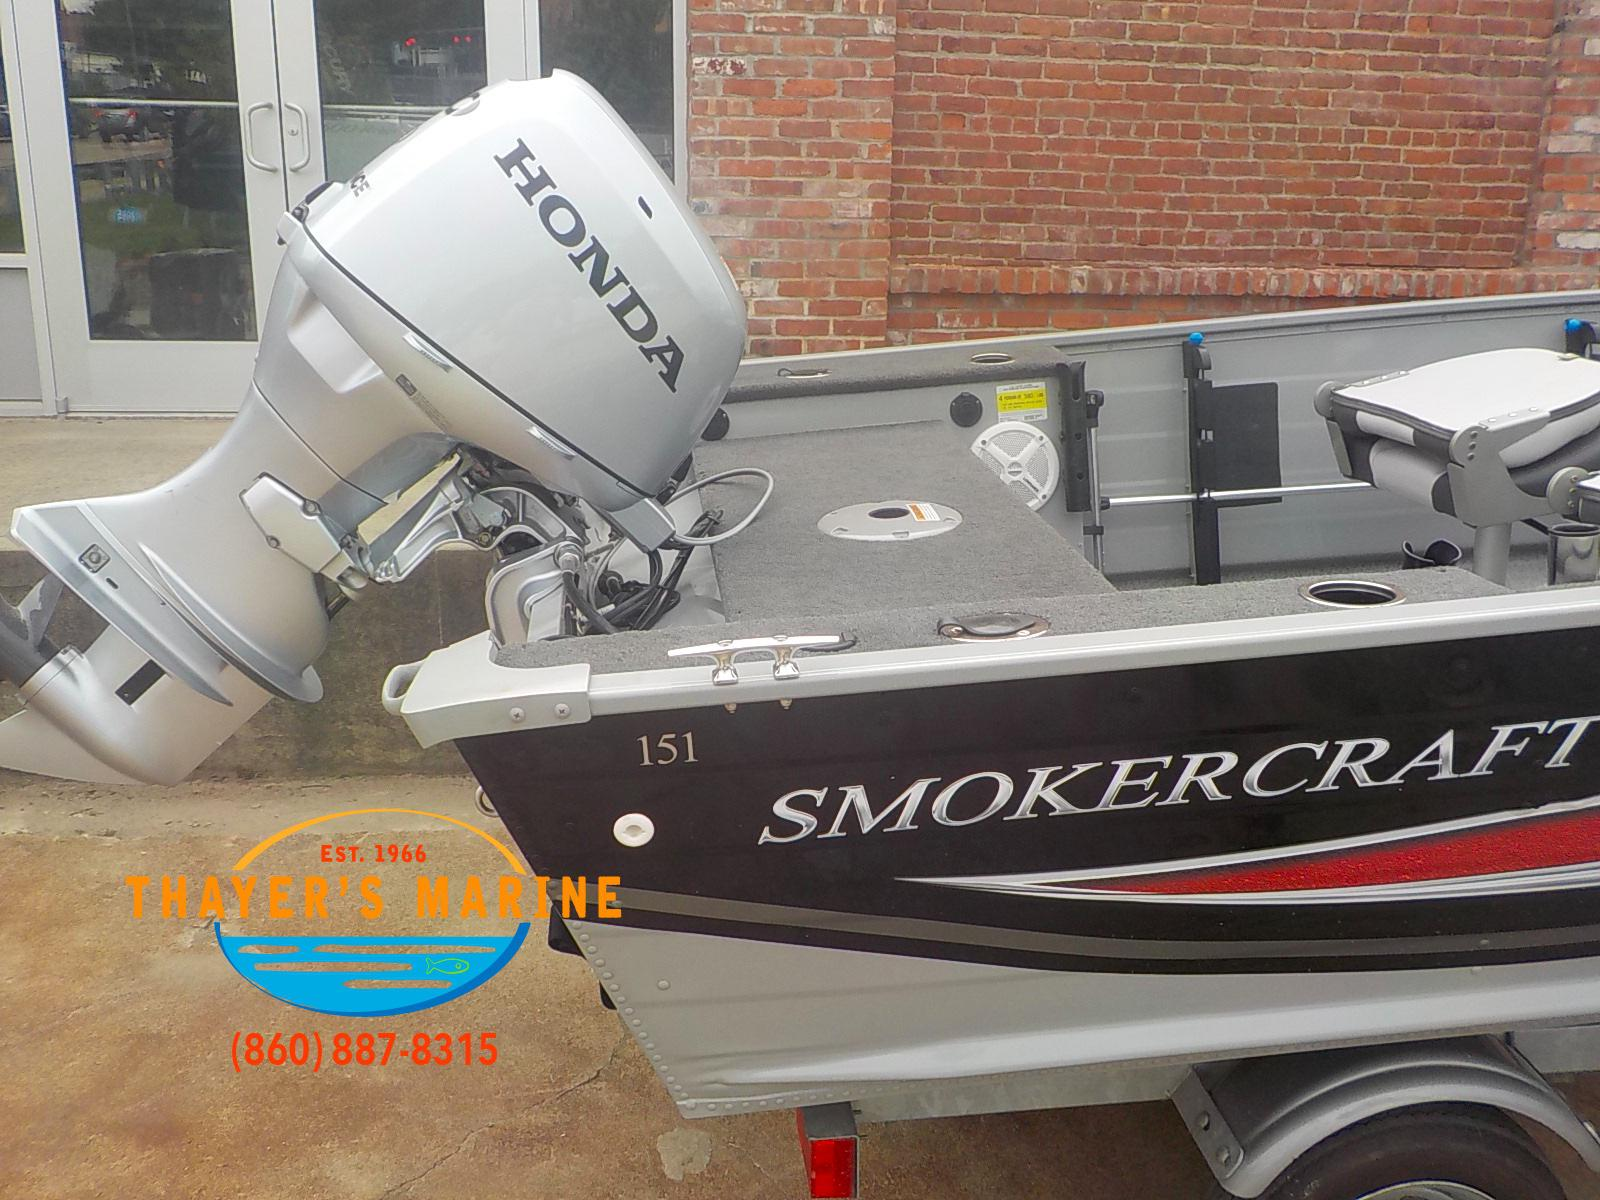 2013 Smoker Craft boat for sale, model of the boat is 151 & Image # 14 of 24